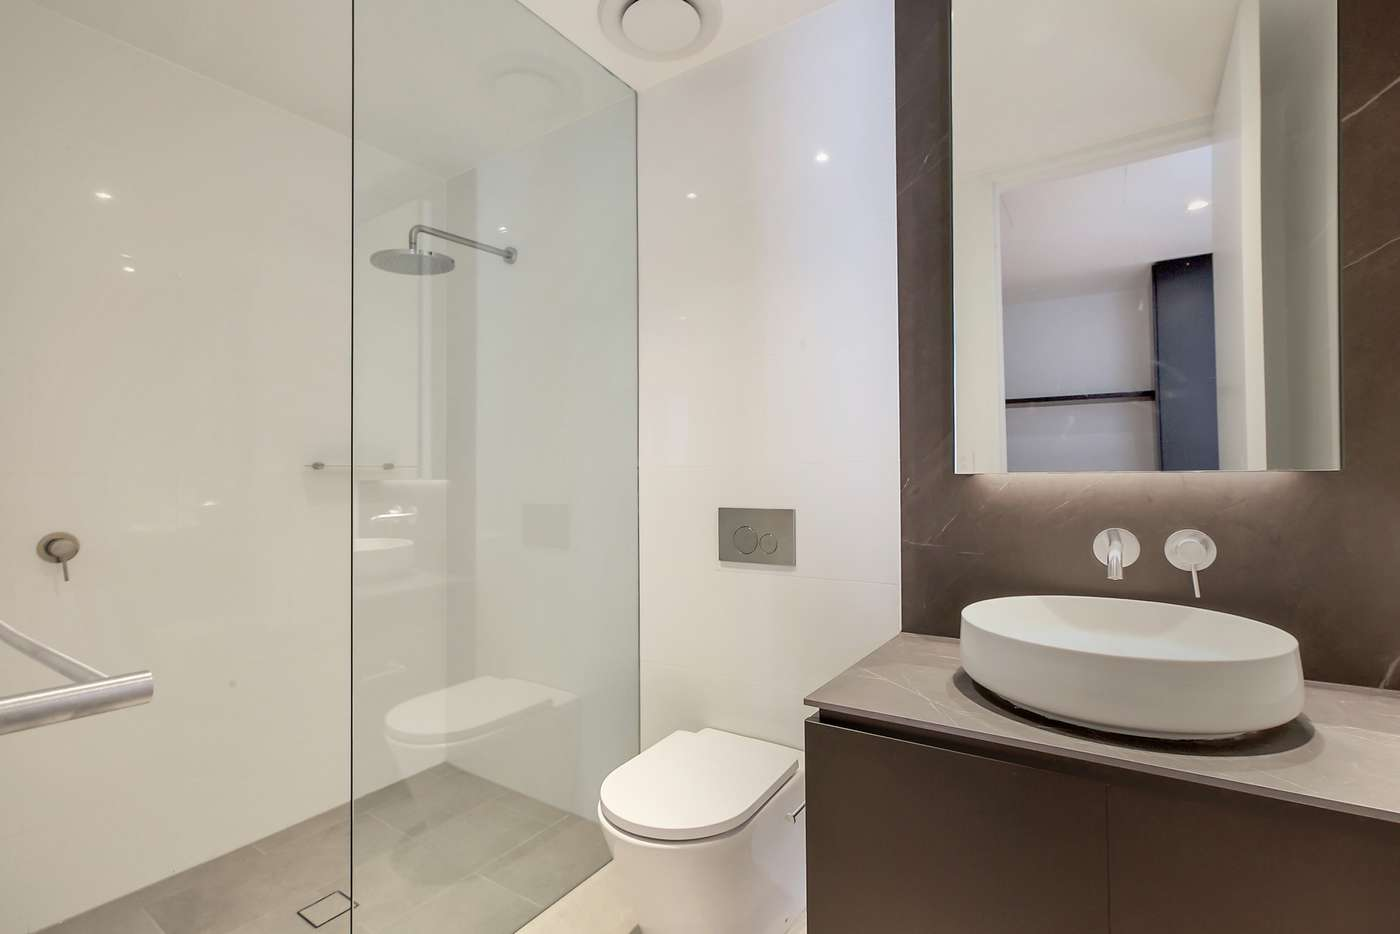 Sixth view of Homely apartment listing, 206/37 Bayswater Road, Potts Point NSW 2011